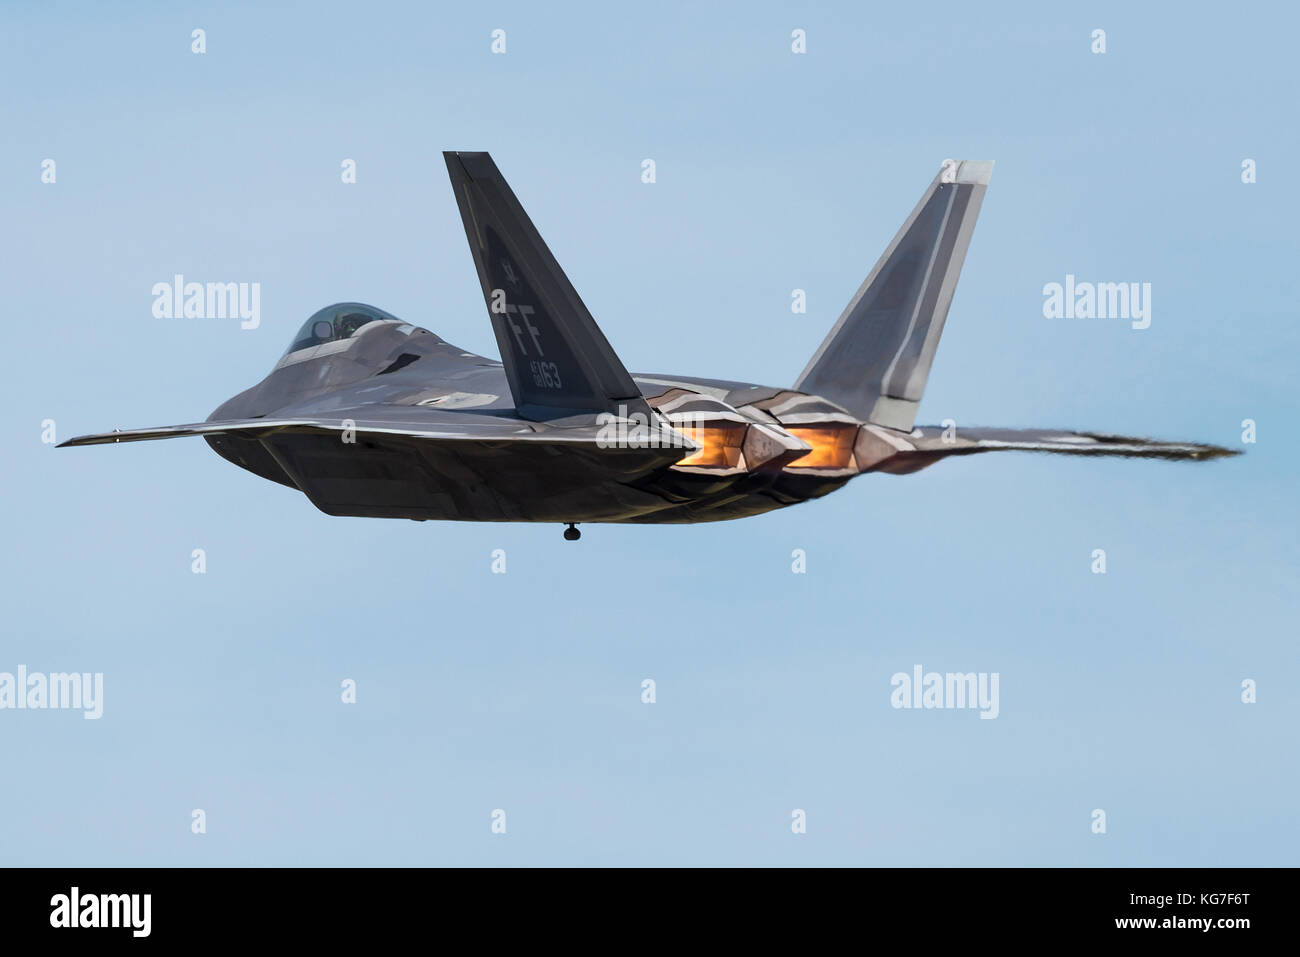 hight resolution of a f 22 raptor fifth generation single seat twin engine